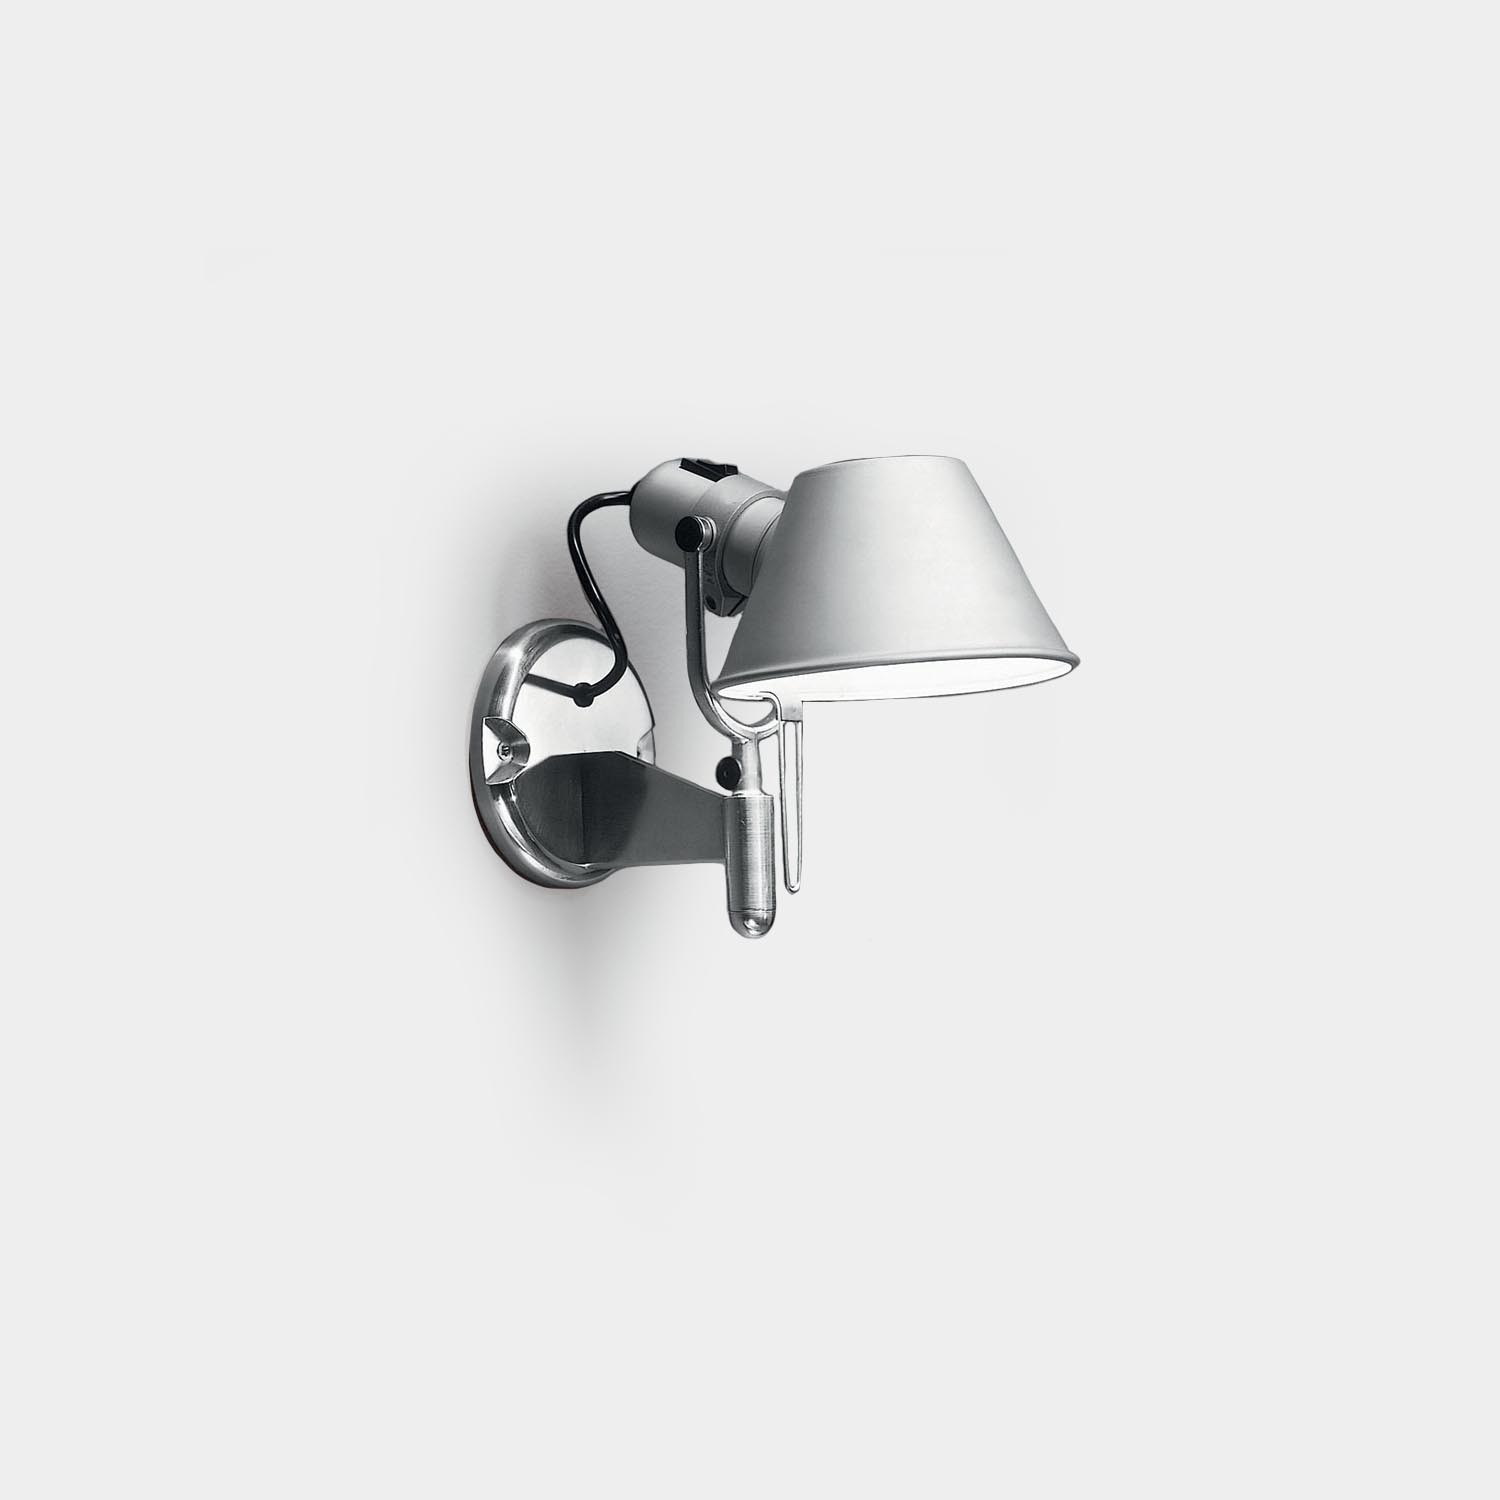 Wall Spot Lamp Tolomeo with Switch